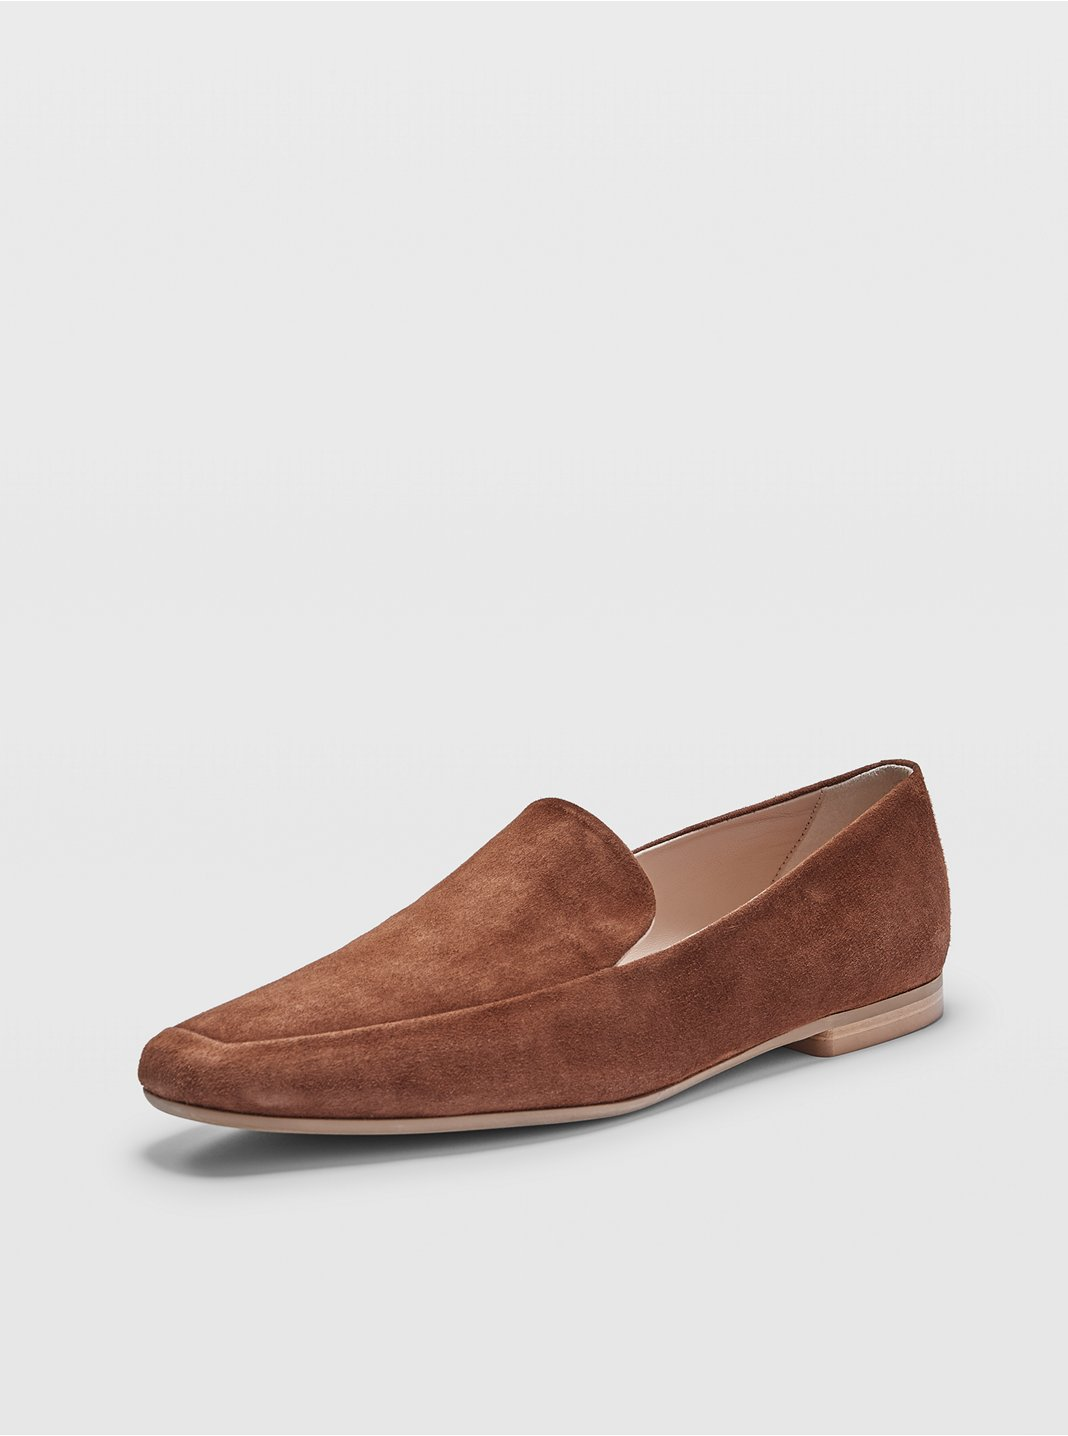 Sofii Suede Loafer Flats